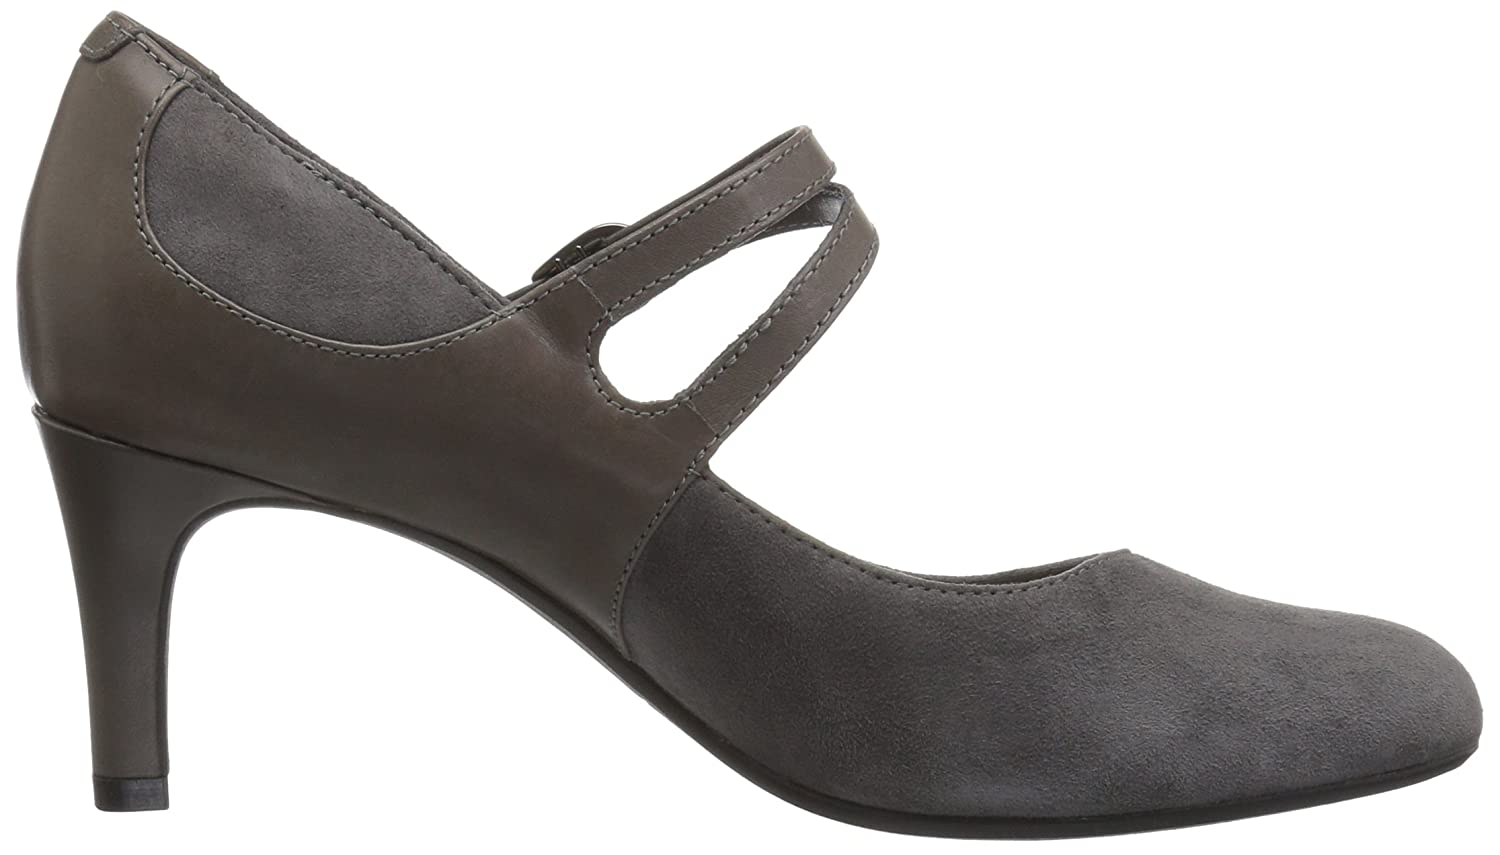 86cb7cf6a8e Clarks Women s Dancer Reece Pump  Buy Online at Low Prices in India -  Amazon.in